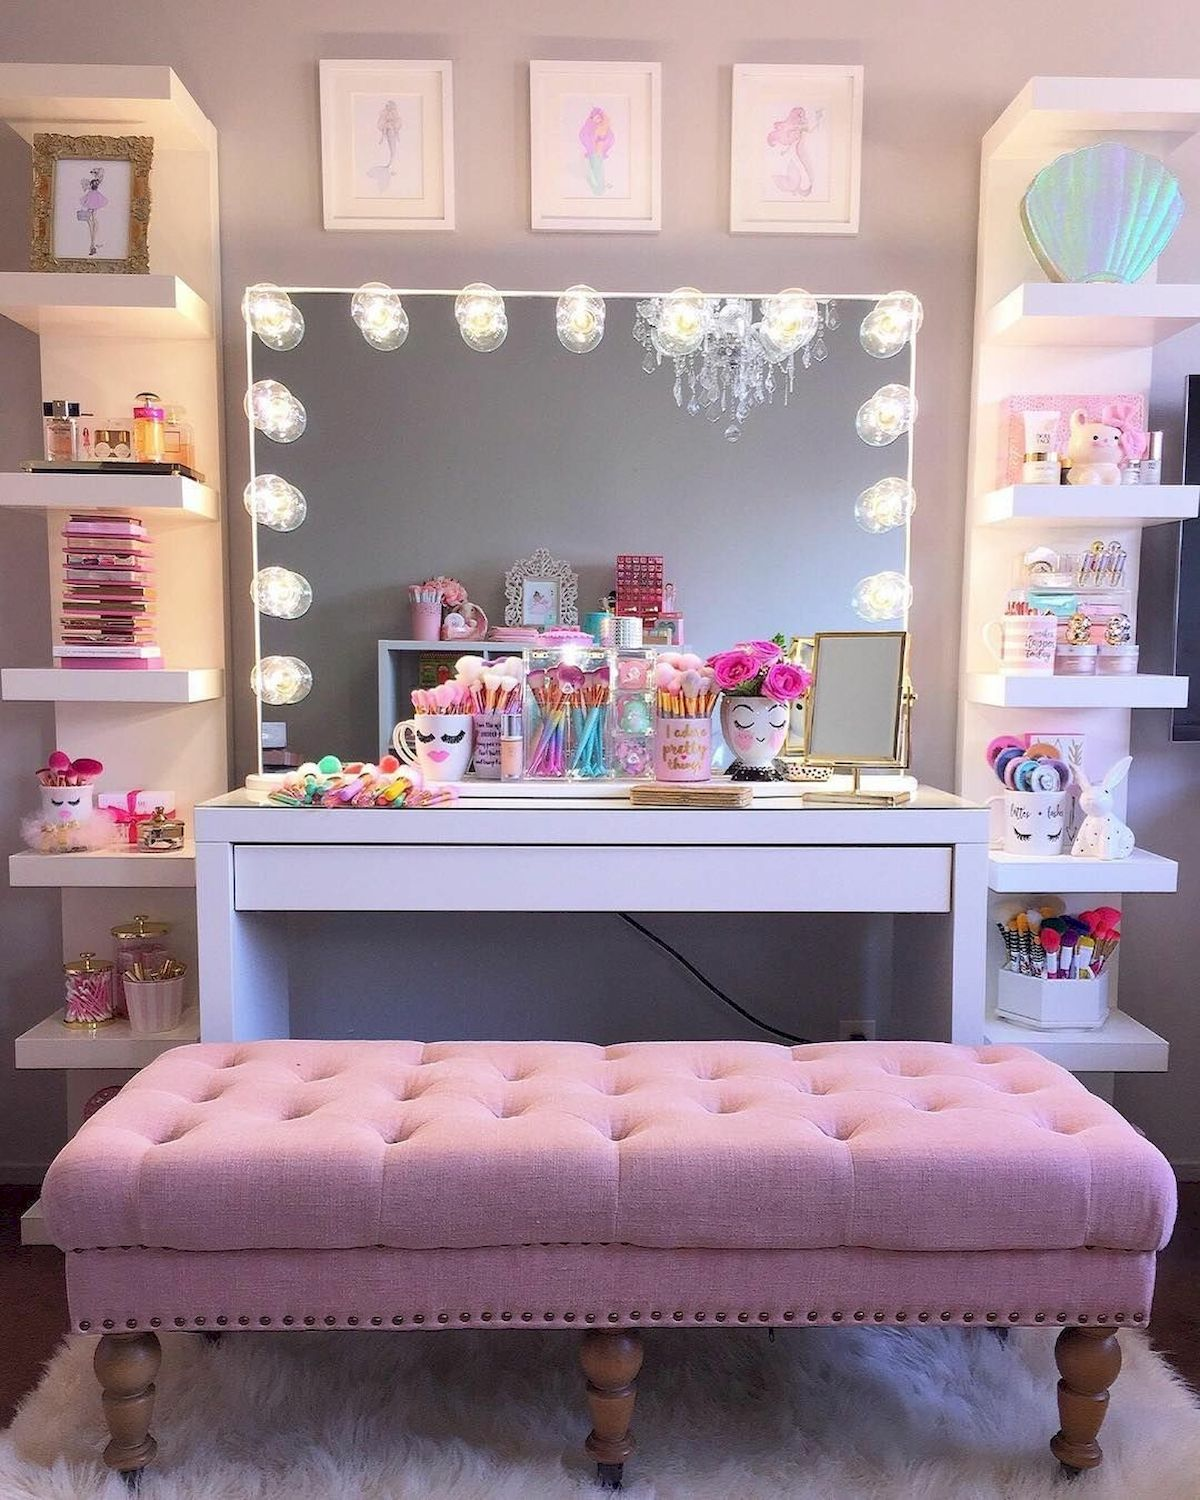 40 Beautiful Make Up Room Ideas in Your Bedroom (6)